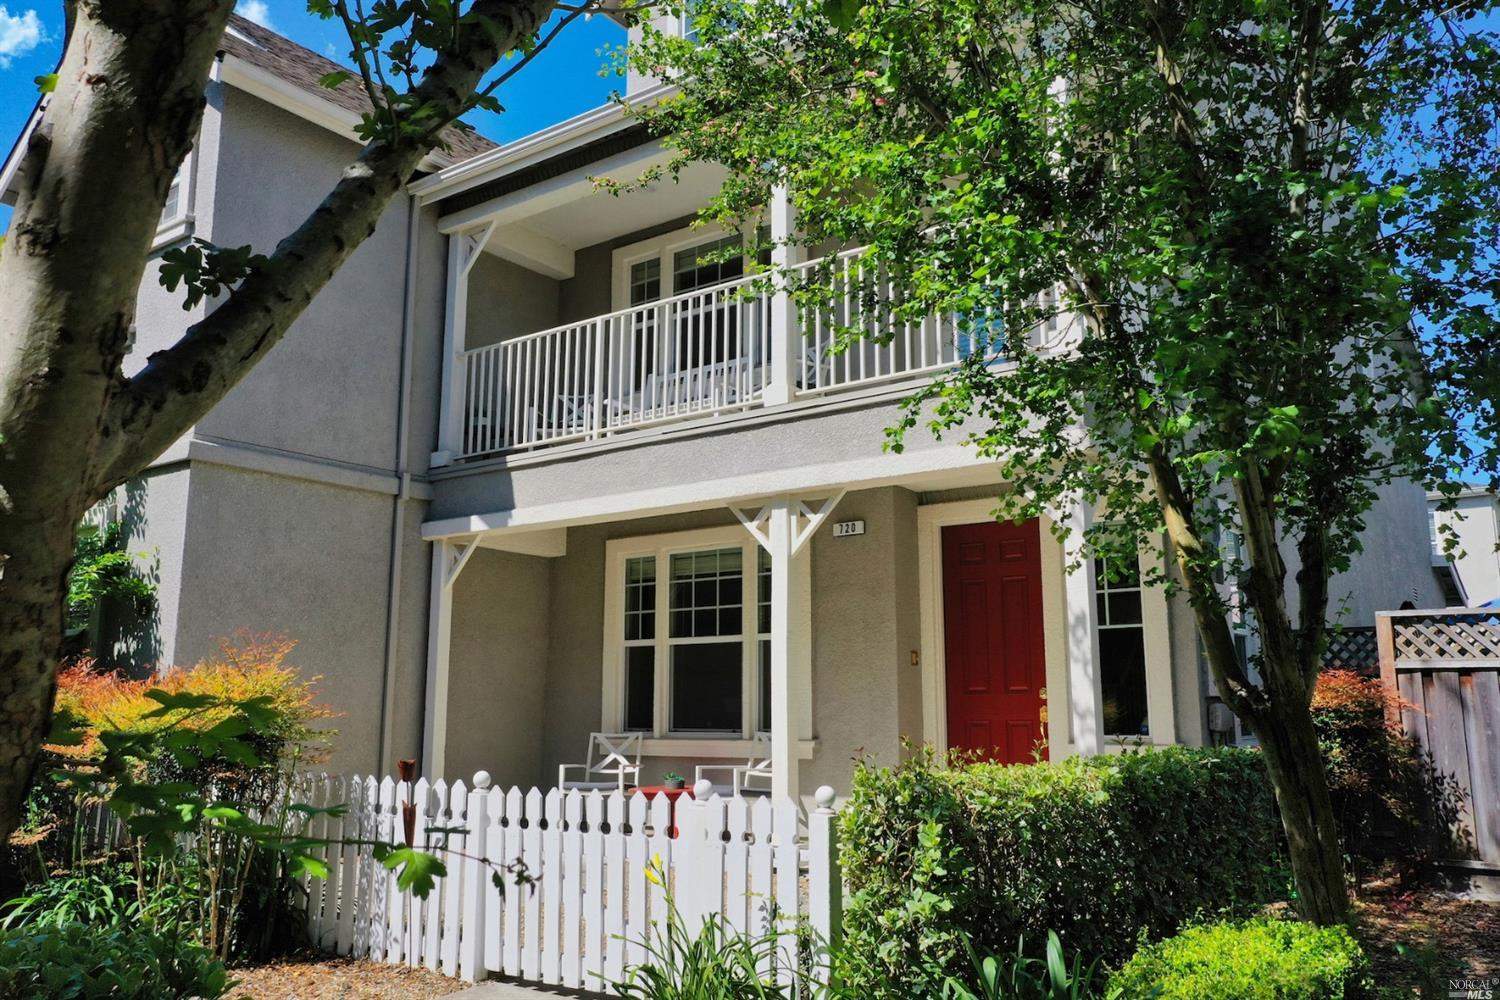 Modern, spacious and meticulously-maintained 3br/3ba Napa townhouse. Dual masters with crown moulding, full baths and walk-in closets. Gorgeous new Pergo Outlast+ waterproof flooring in kitchen, living and dining rooms; plush new carpets and tile elsewhere. Newly customized granite kitchen includes expanded counter and cabinet space, with breakfast bar/workspace. Updated bathrooms. Pristine, move-in-ready condition, zero maintenance yard and low HOA make this the perfect primary or secondary home in the beautiful Napa Valley.   FEATURES: Quiet, peaceful court setting,  Sunny front courtyard and 2nd-floor veranda, 2-car garage with storage racks, Kitchen granite counters and GE stainless steel appliances,   Laundry room, Hunter Douglas blind